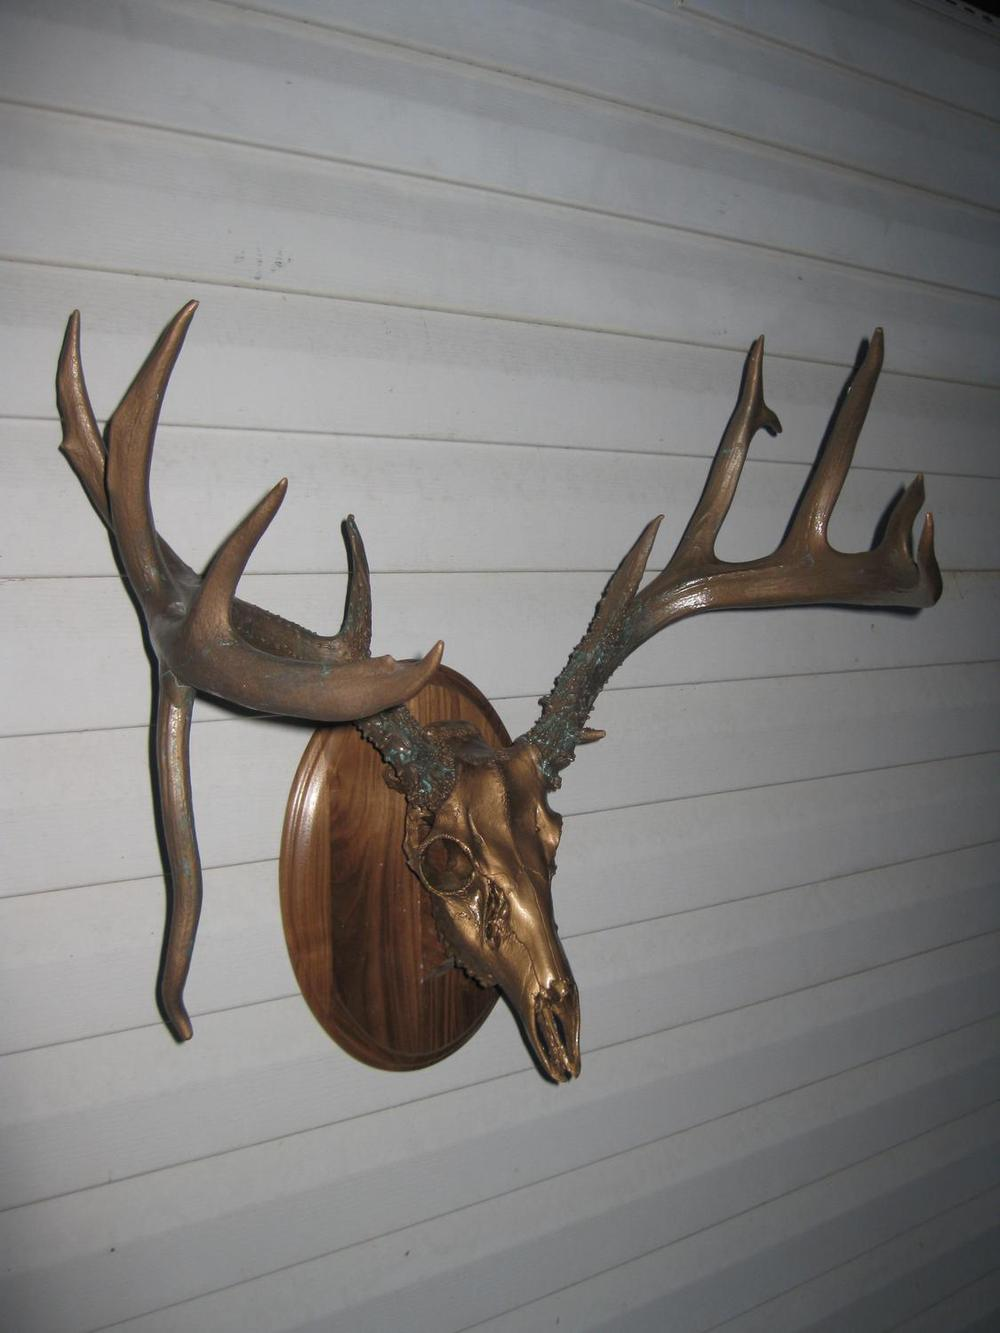 8 and DroppingMetalized bronze droptine whitetail antlers with mint green patina and bronze/brass metalized skull - The Antler Shack copper,bronze, brass, and silver metalized creations limited addition bronze